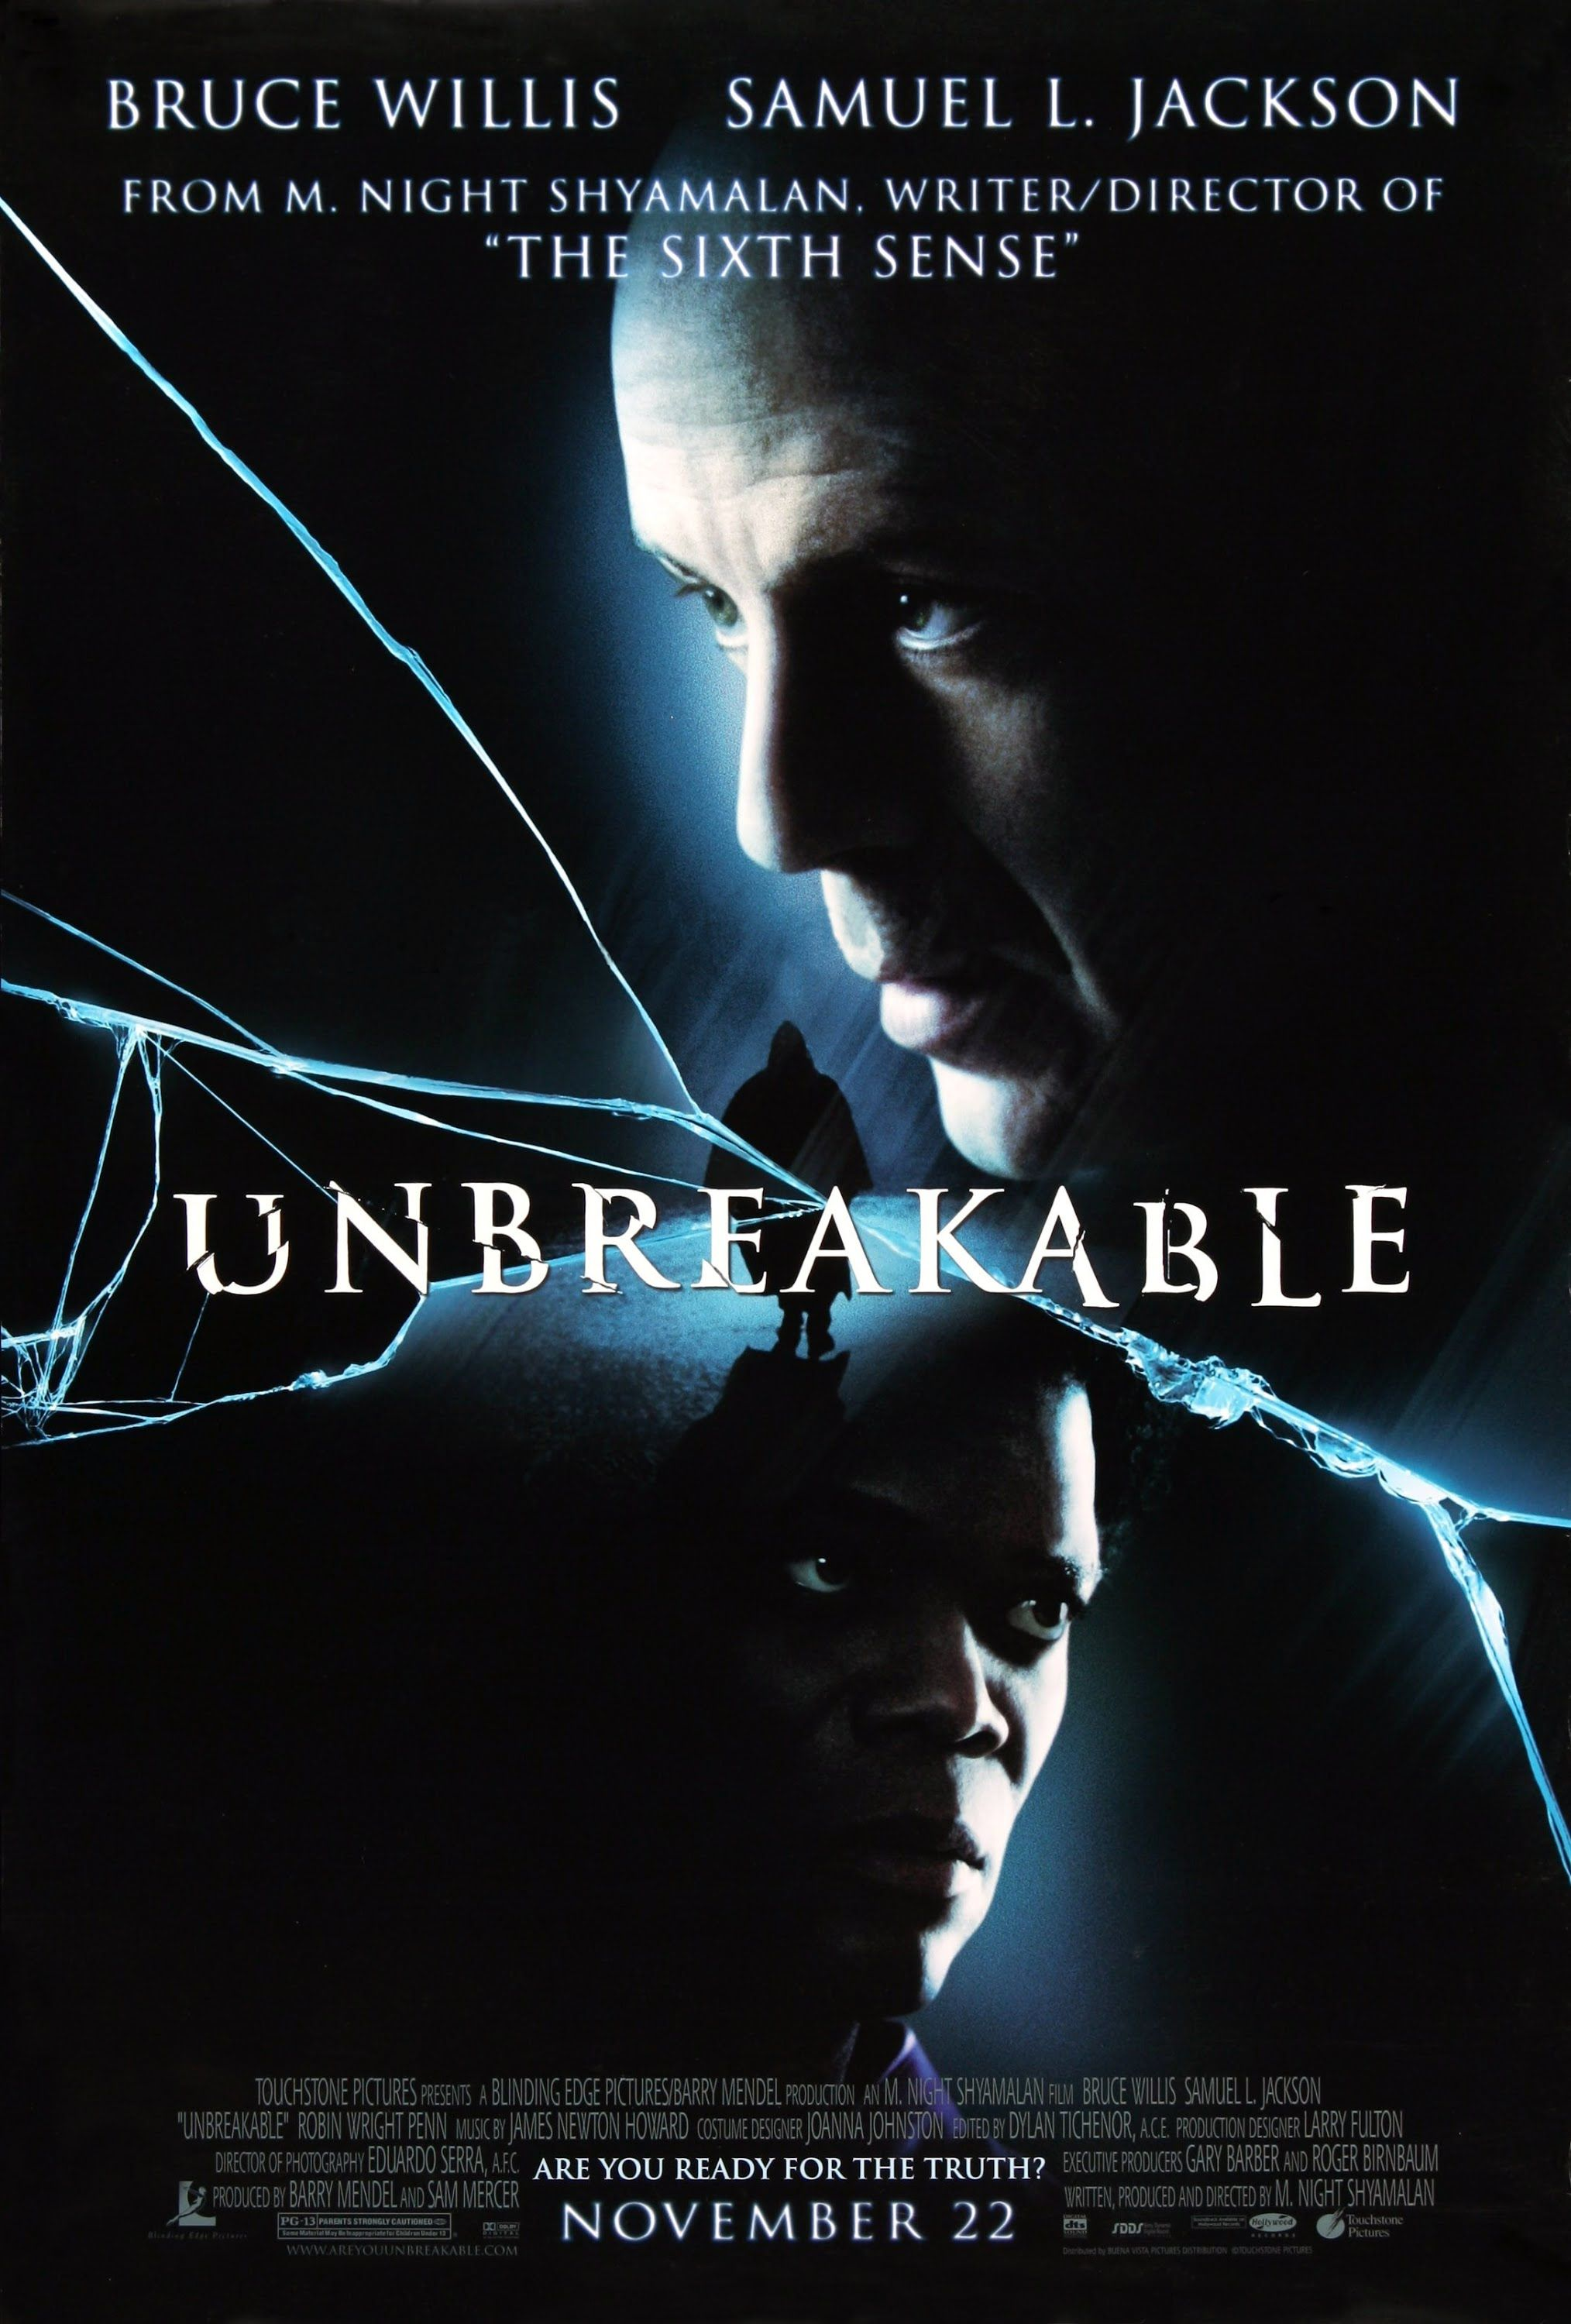 [Bruce Willis Movies] ''Unbreakable'' (2000) [Full Movie HD 1080p] link: https://youtu.be/T7eQhoOZR-4 ''' a 2000 American neo-noir superhero drama film written, produced, and directed by M. Night Shyamalan and starring Bruce Willis and Samuel L. Jackson. The film tells the story of Philadelphia security guard David Dunn, who slowly discovers that he possesses superhuman powers.''